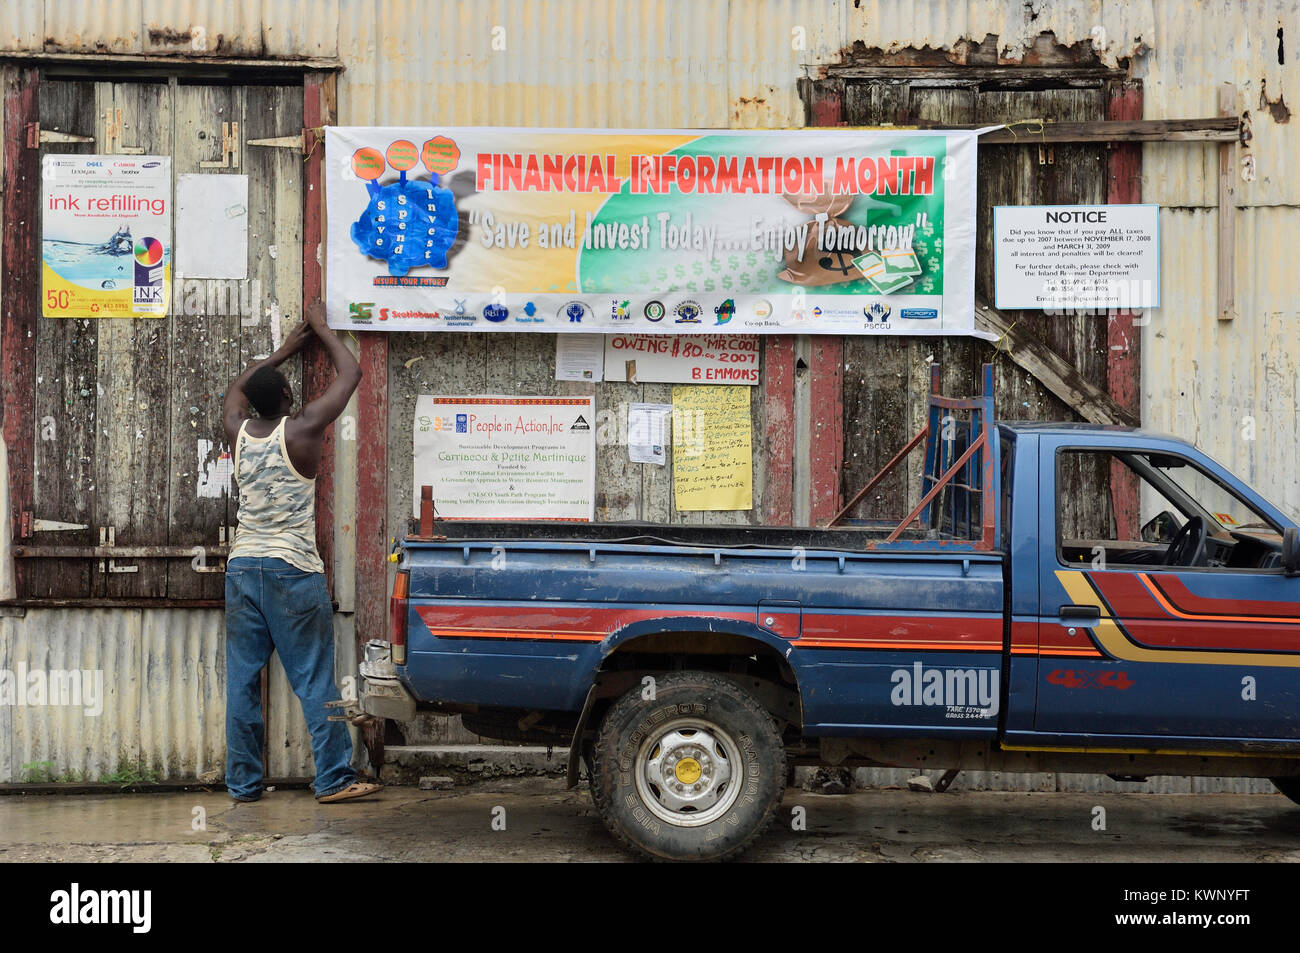 Notices and advertising pinned to an old building,Hillsborough, Carriacou, Grenadine Islands, Caribbean - Stock Image